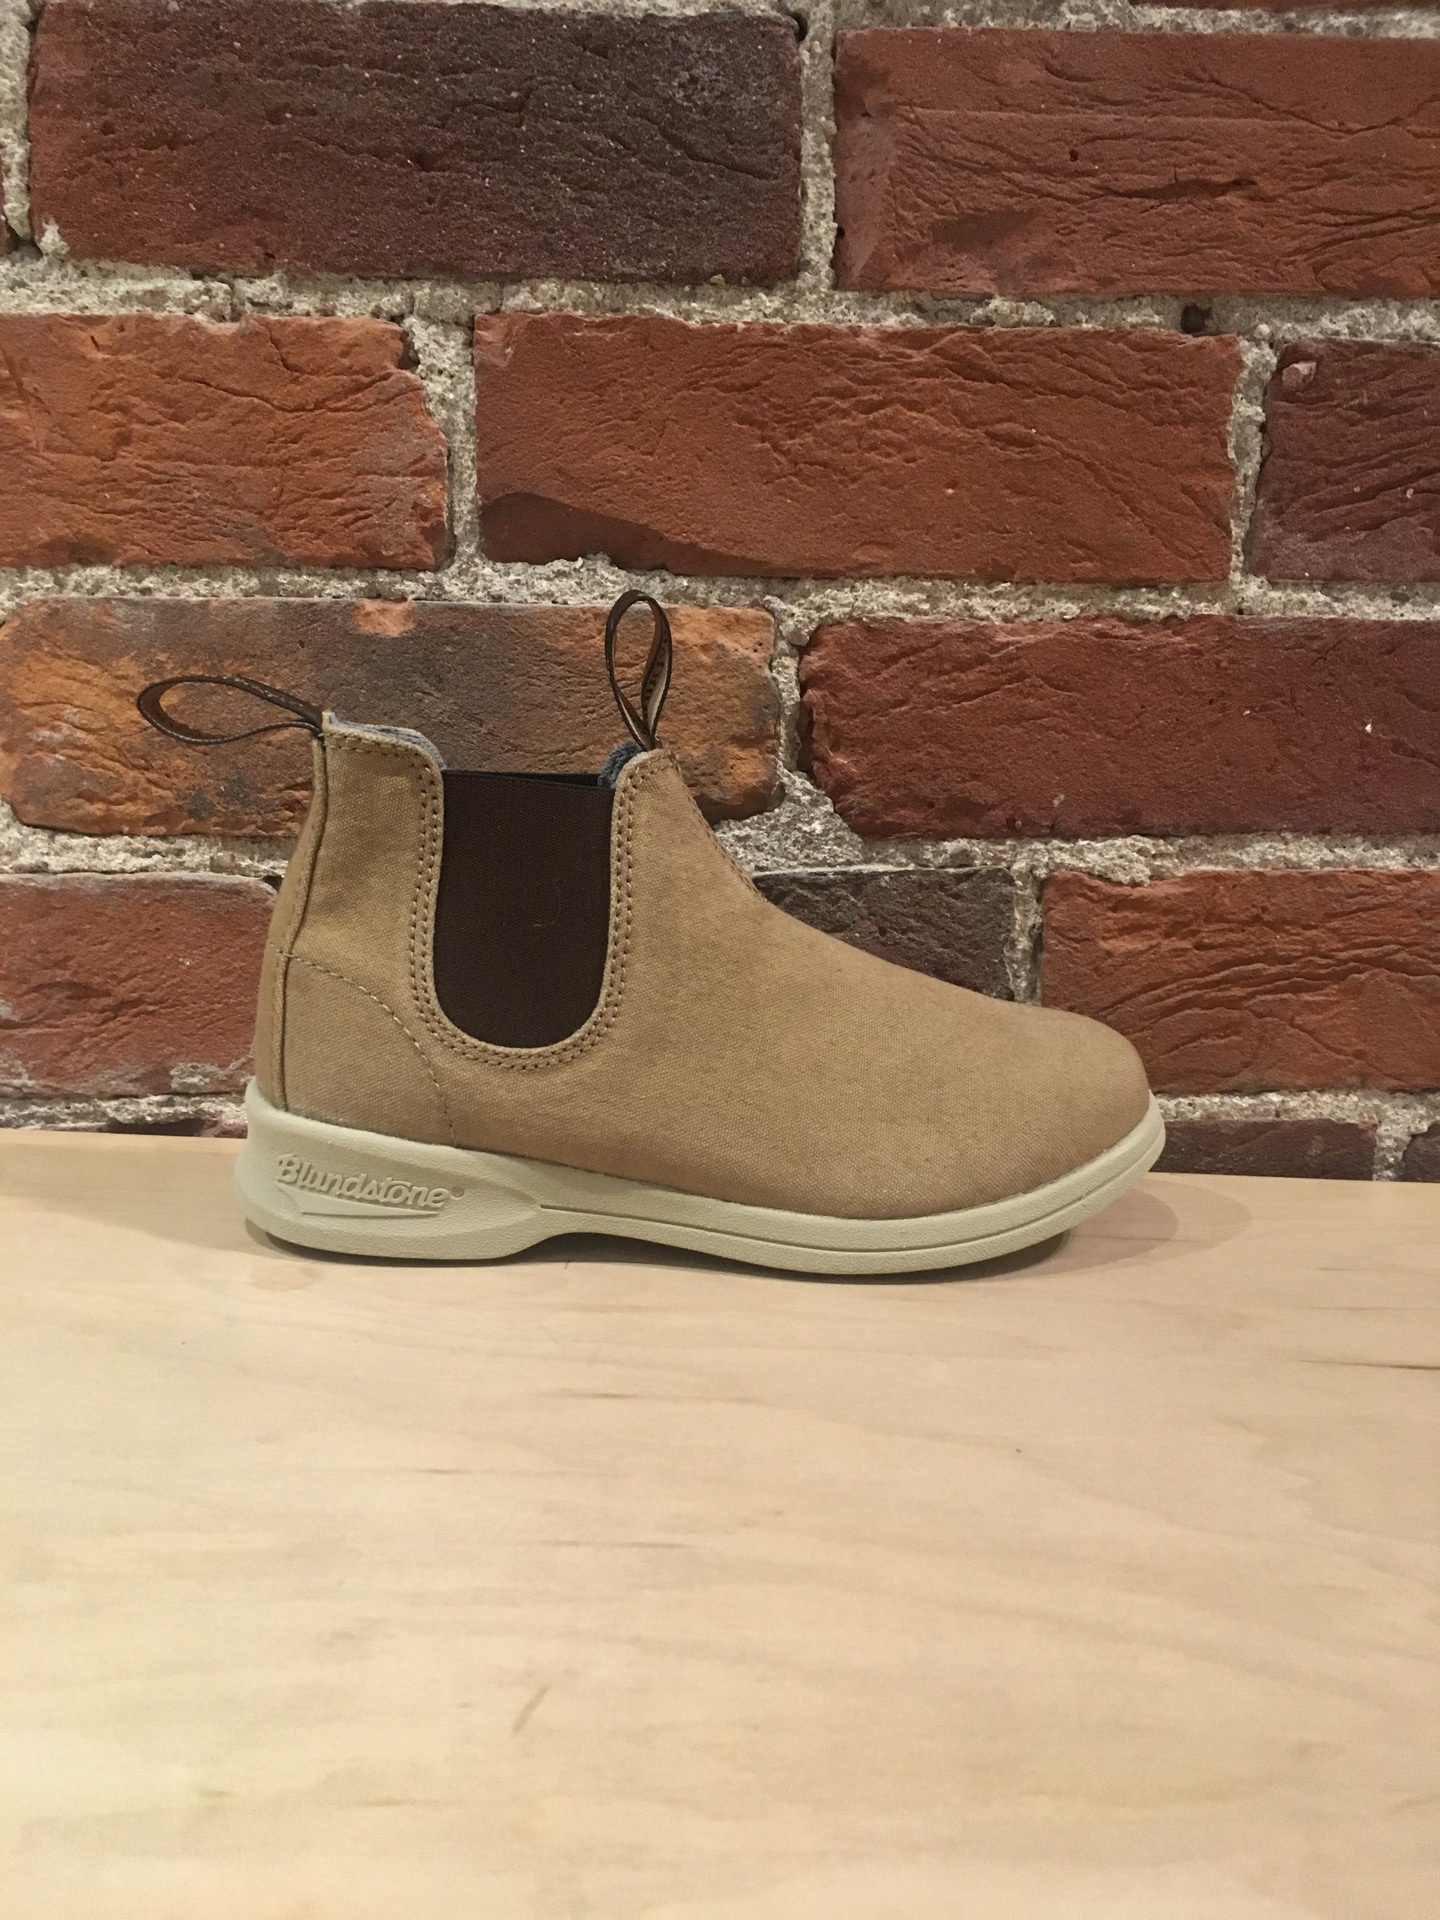 BLUNDSTONE - 1375 CANVAS IN SAND